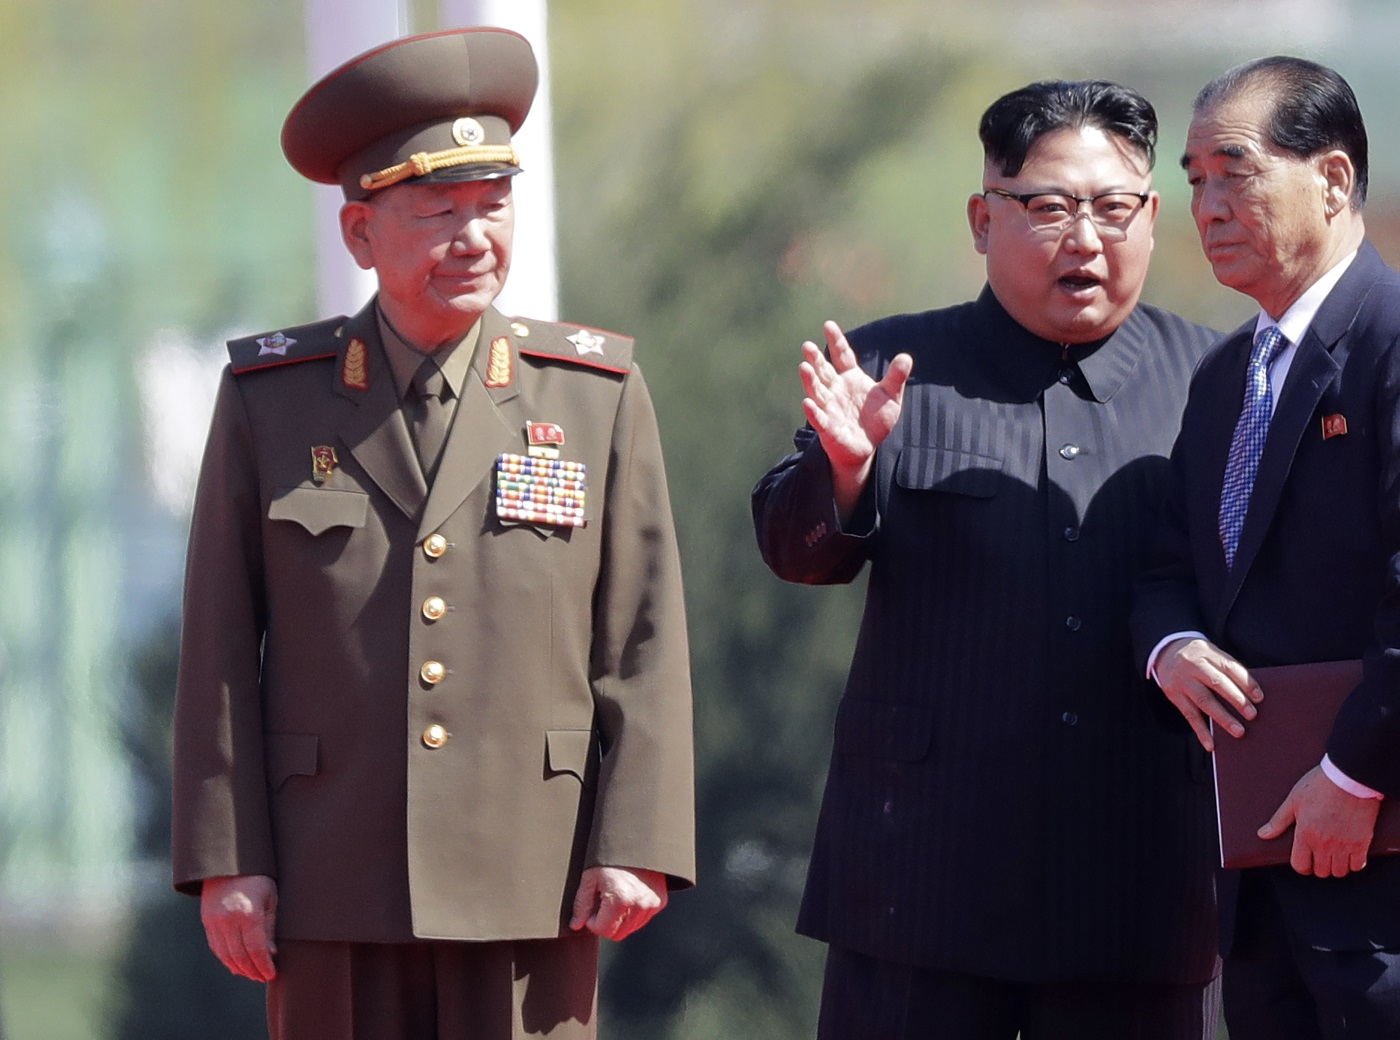 In this April 13, 2017, file photo, Hwang Pyong So, left, stands near North Korean leader Kim Jong Un, second from right, and Pak Pong Ju, right, during the opening ceremony of the Ryomyong residential area, a collection of more than a dozen apartment buildings in Pyongyang, North Korea. (Wong Maye-E/AP)